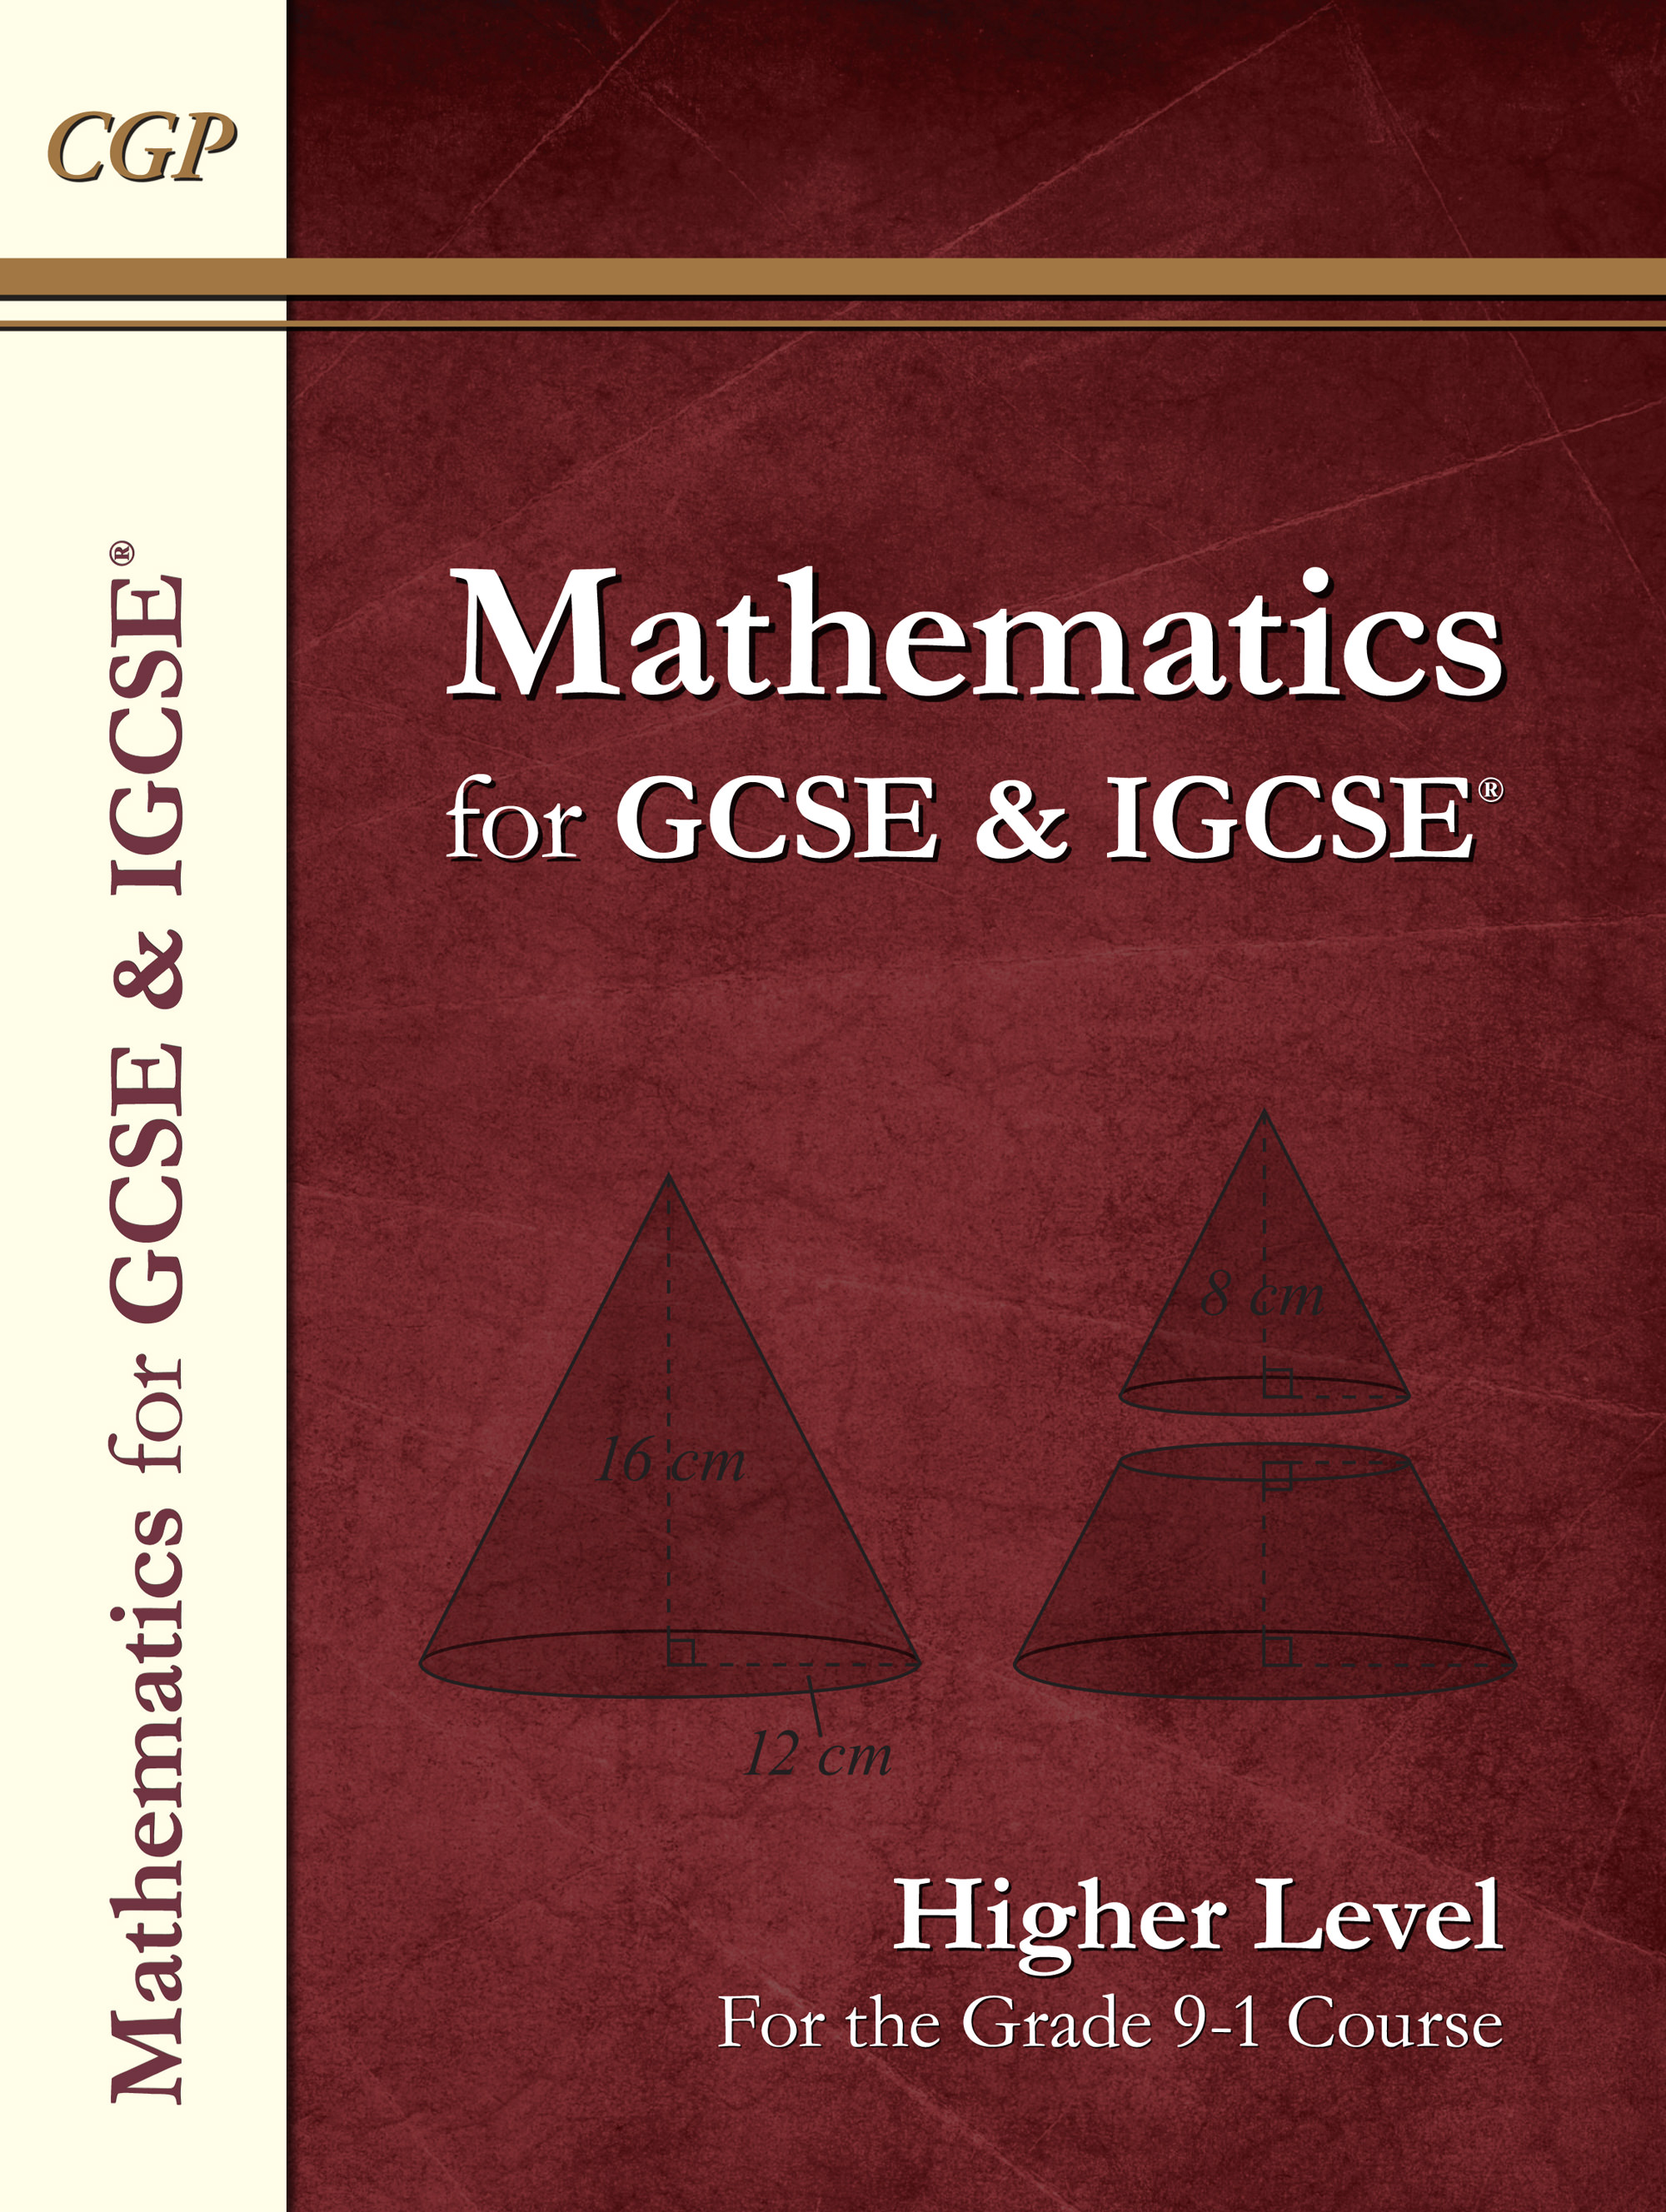 MHN43G - Maths for GCSE Textbook: Online Edition with answers - Higher (for the Grade 9-1 Course)